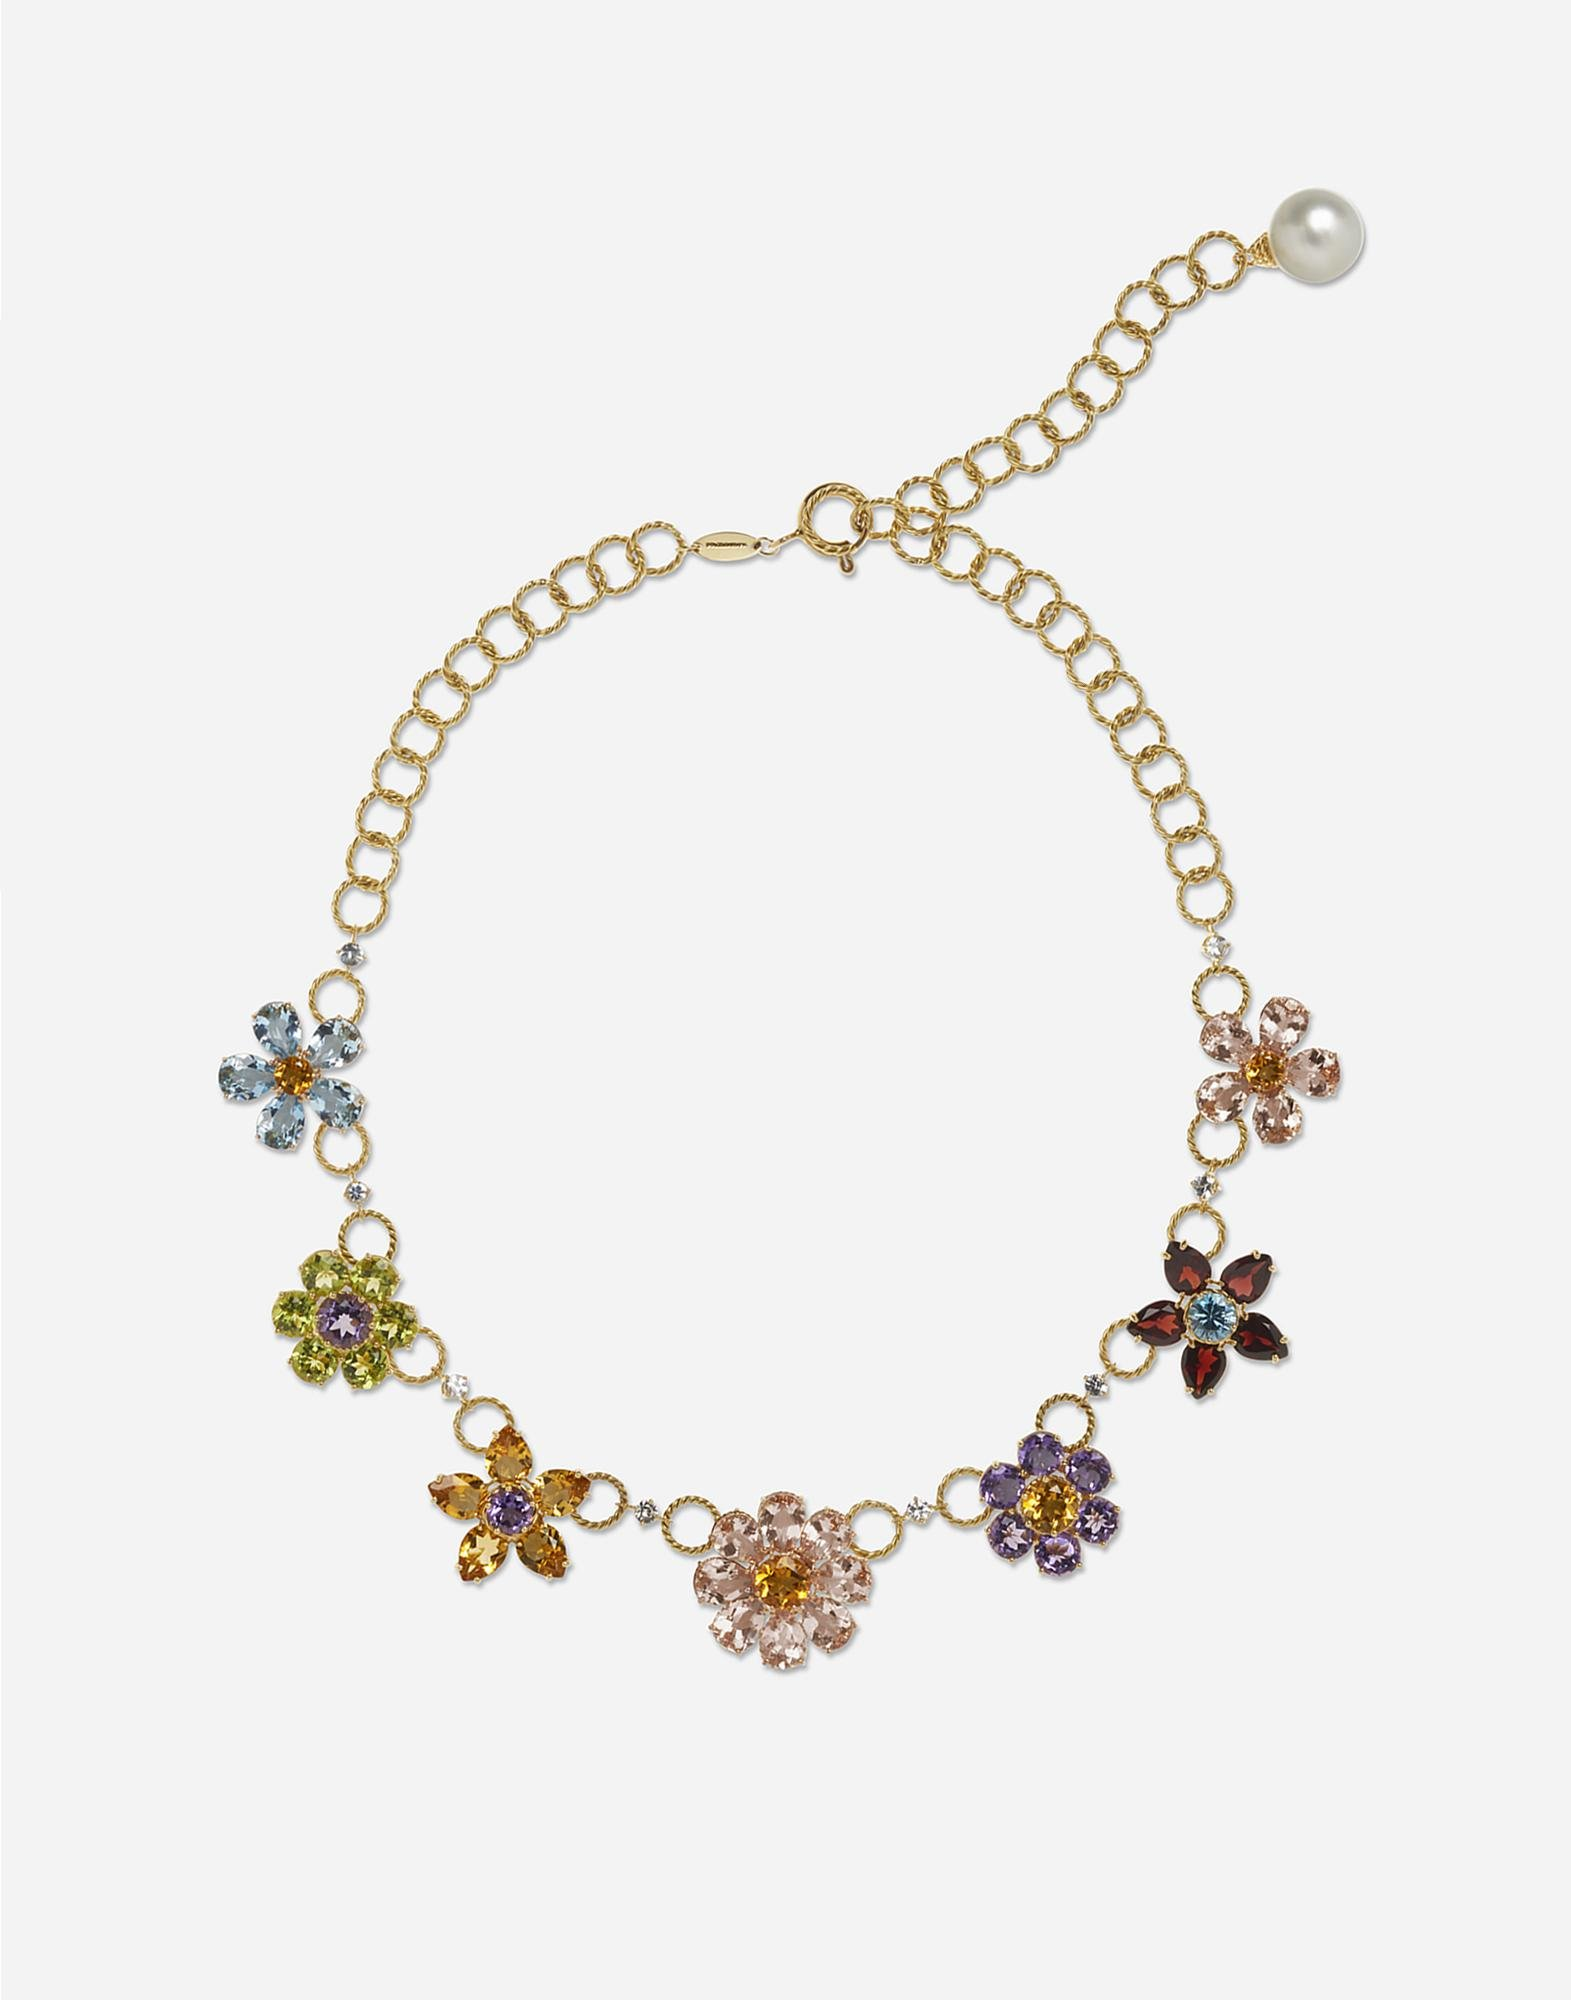 Necklace with floral decorative elements